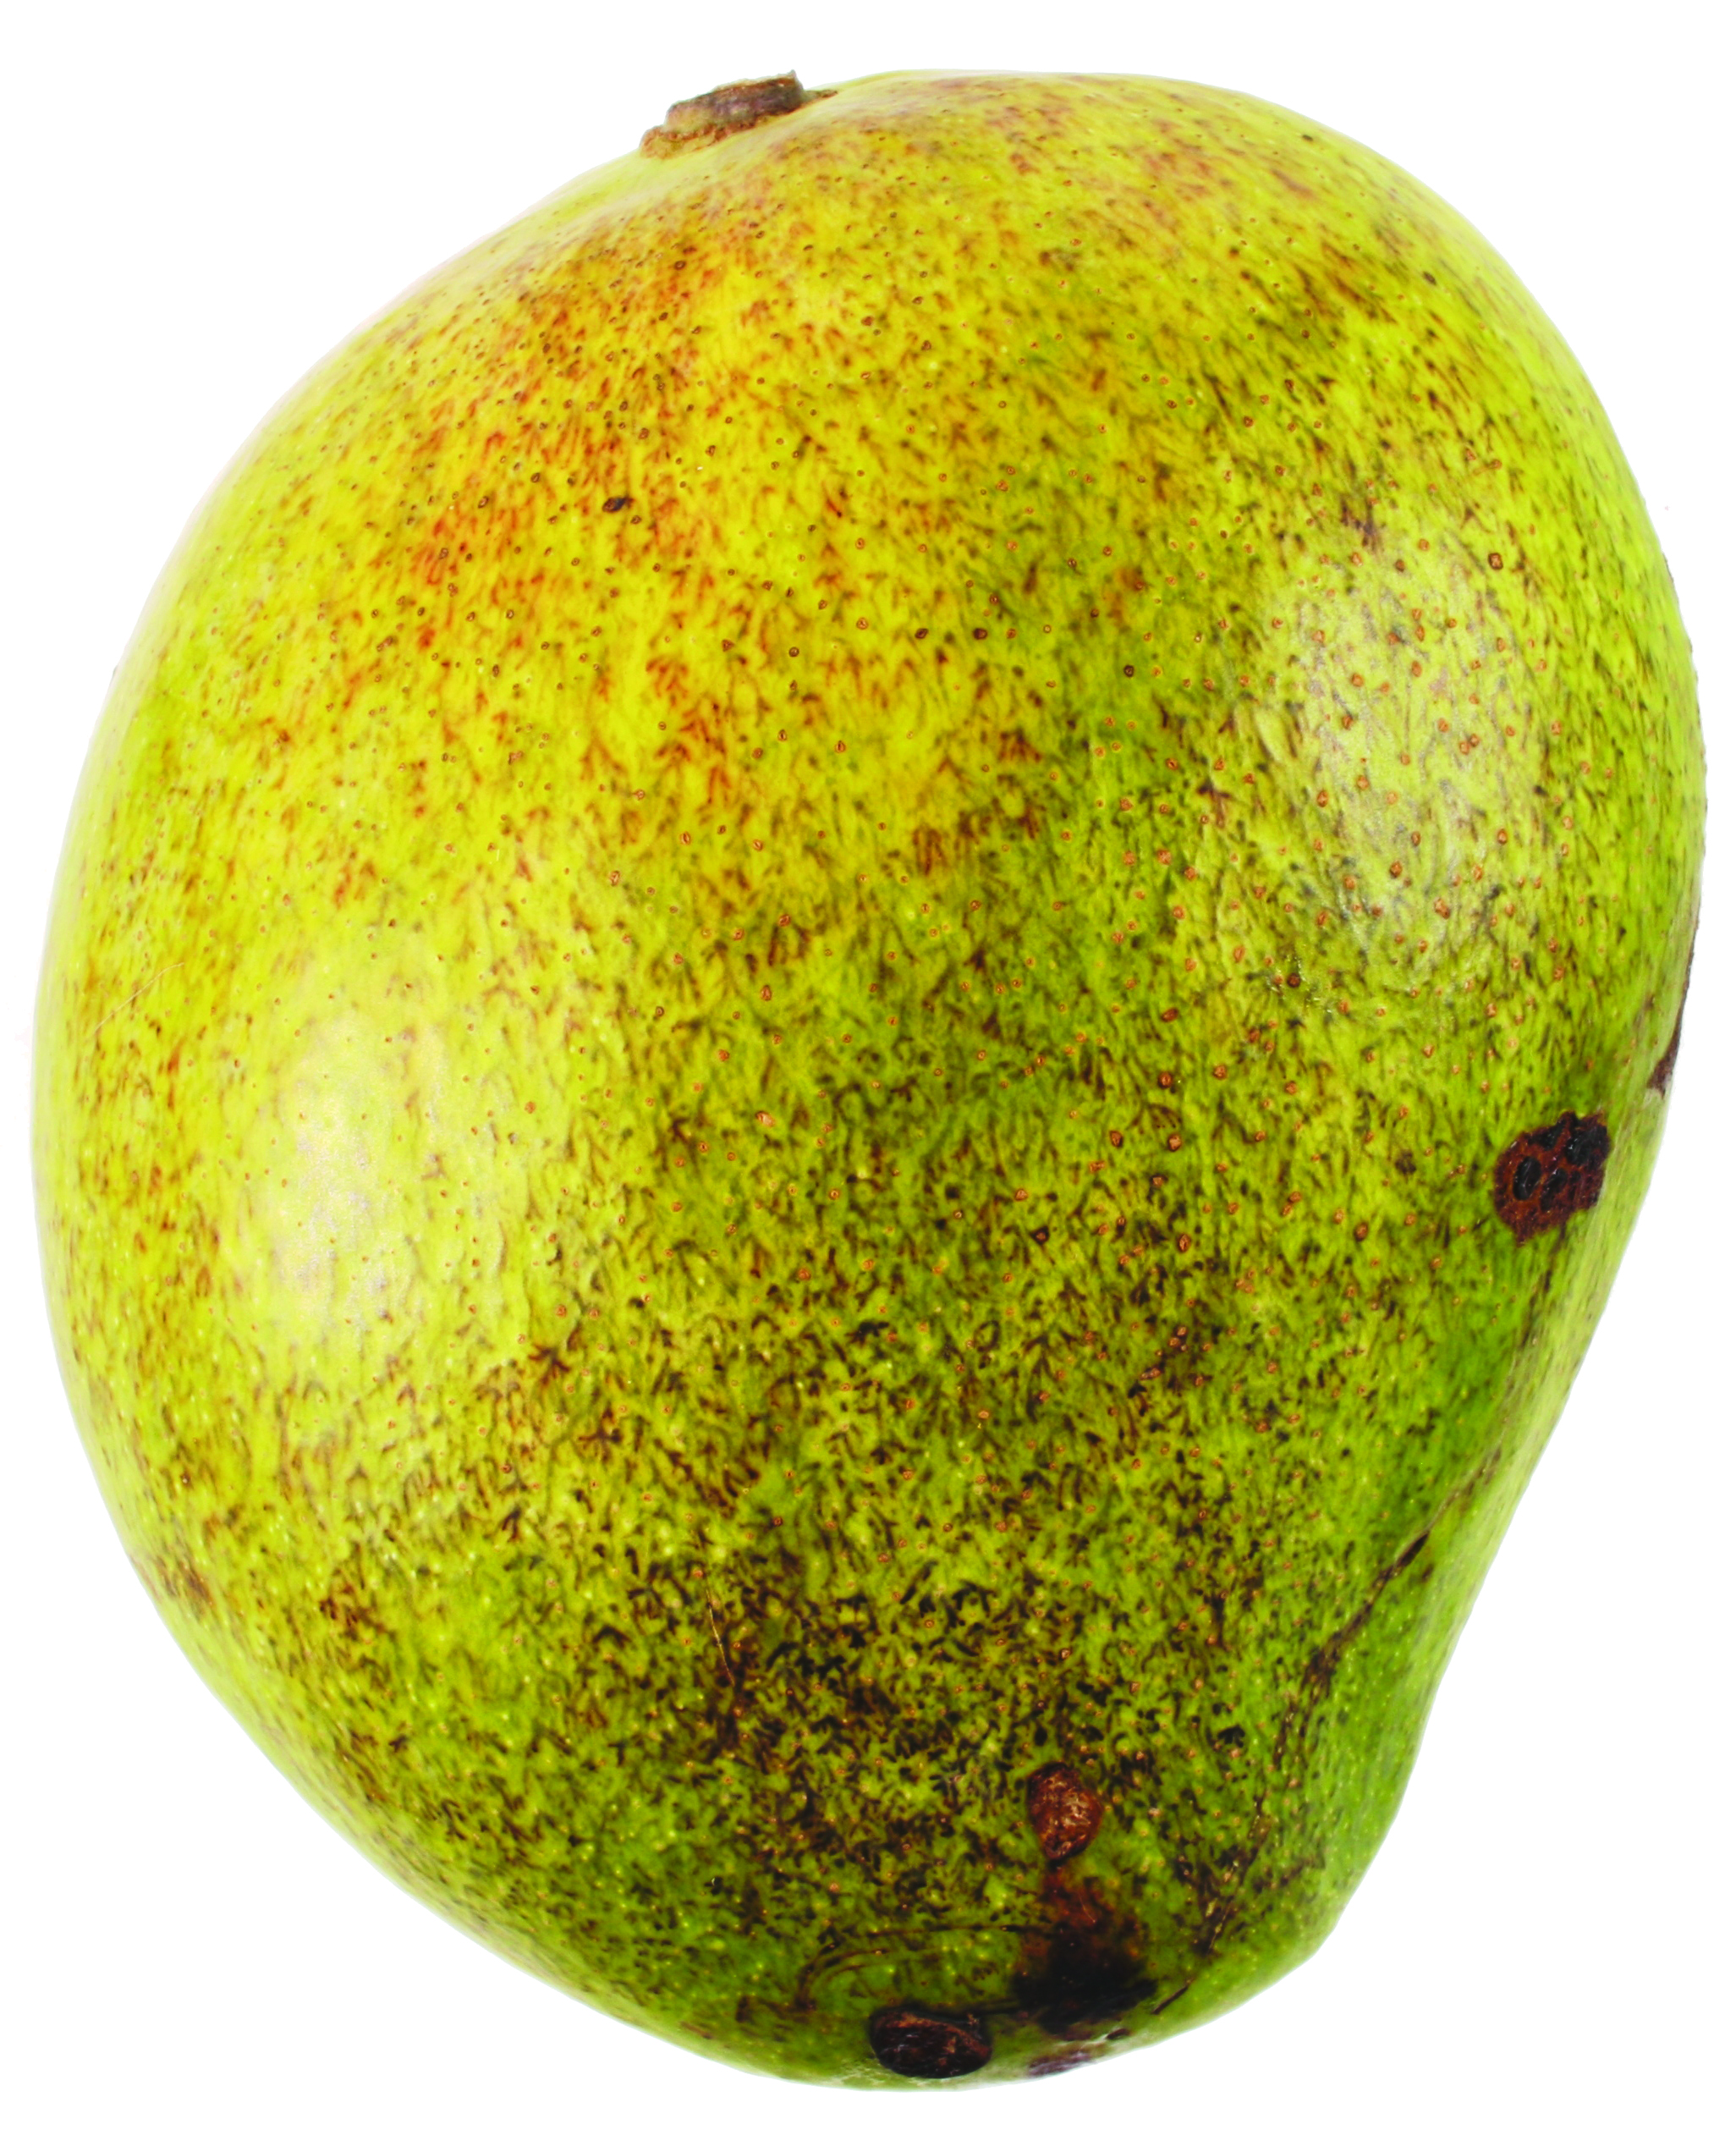 Injured Kensington Pride mango fruit on the tree can occasionally show RCD through the skin